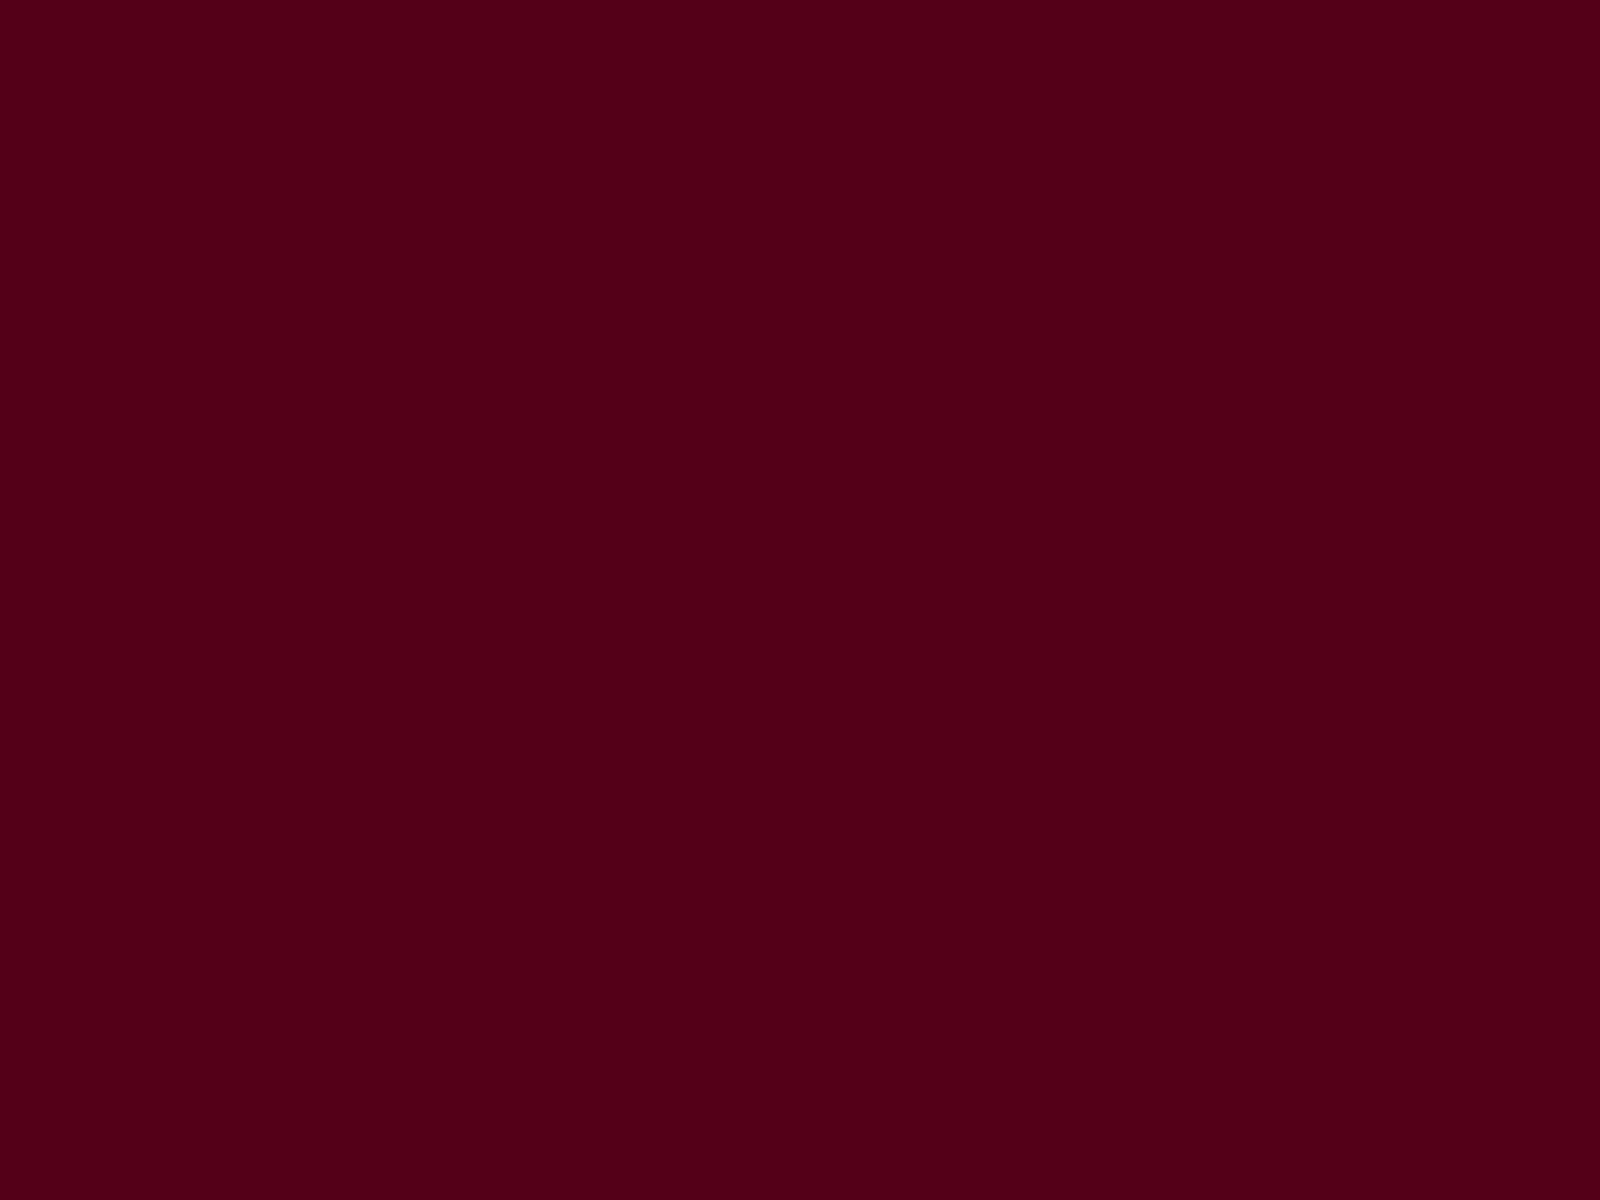 1600x1200 Dark Scarlet Solid Color Background